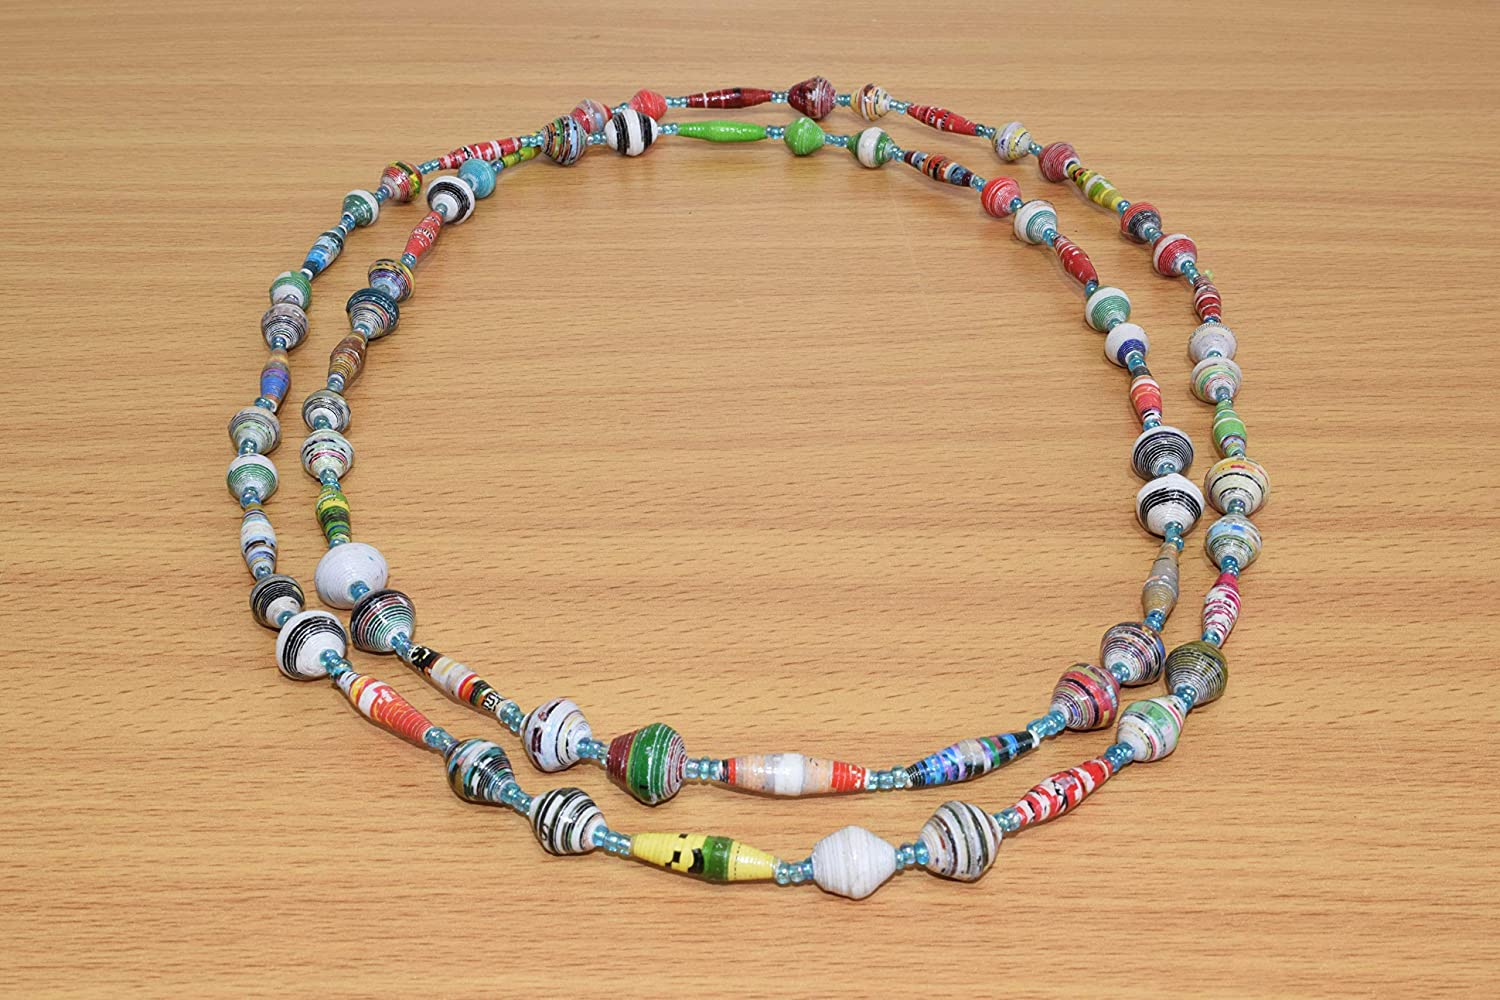 Handmade African Necklace Made Brand new of - Beads Recycled Portland Mall Paper Handmad